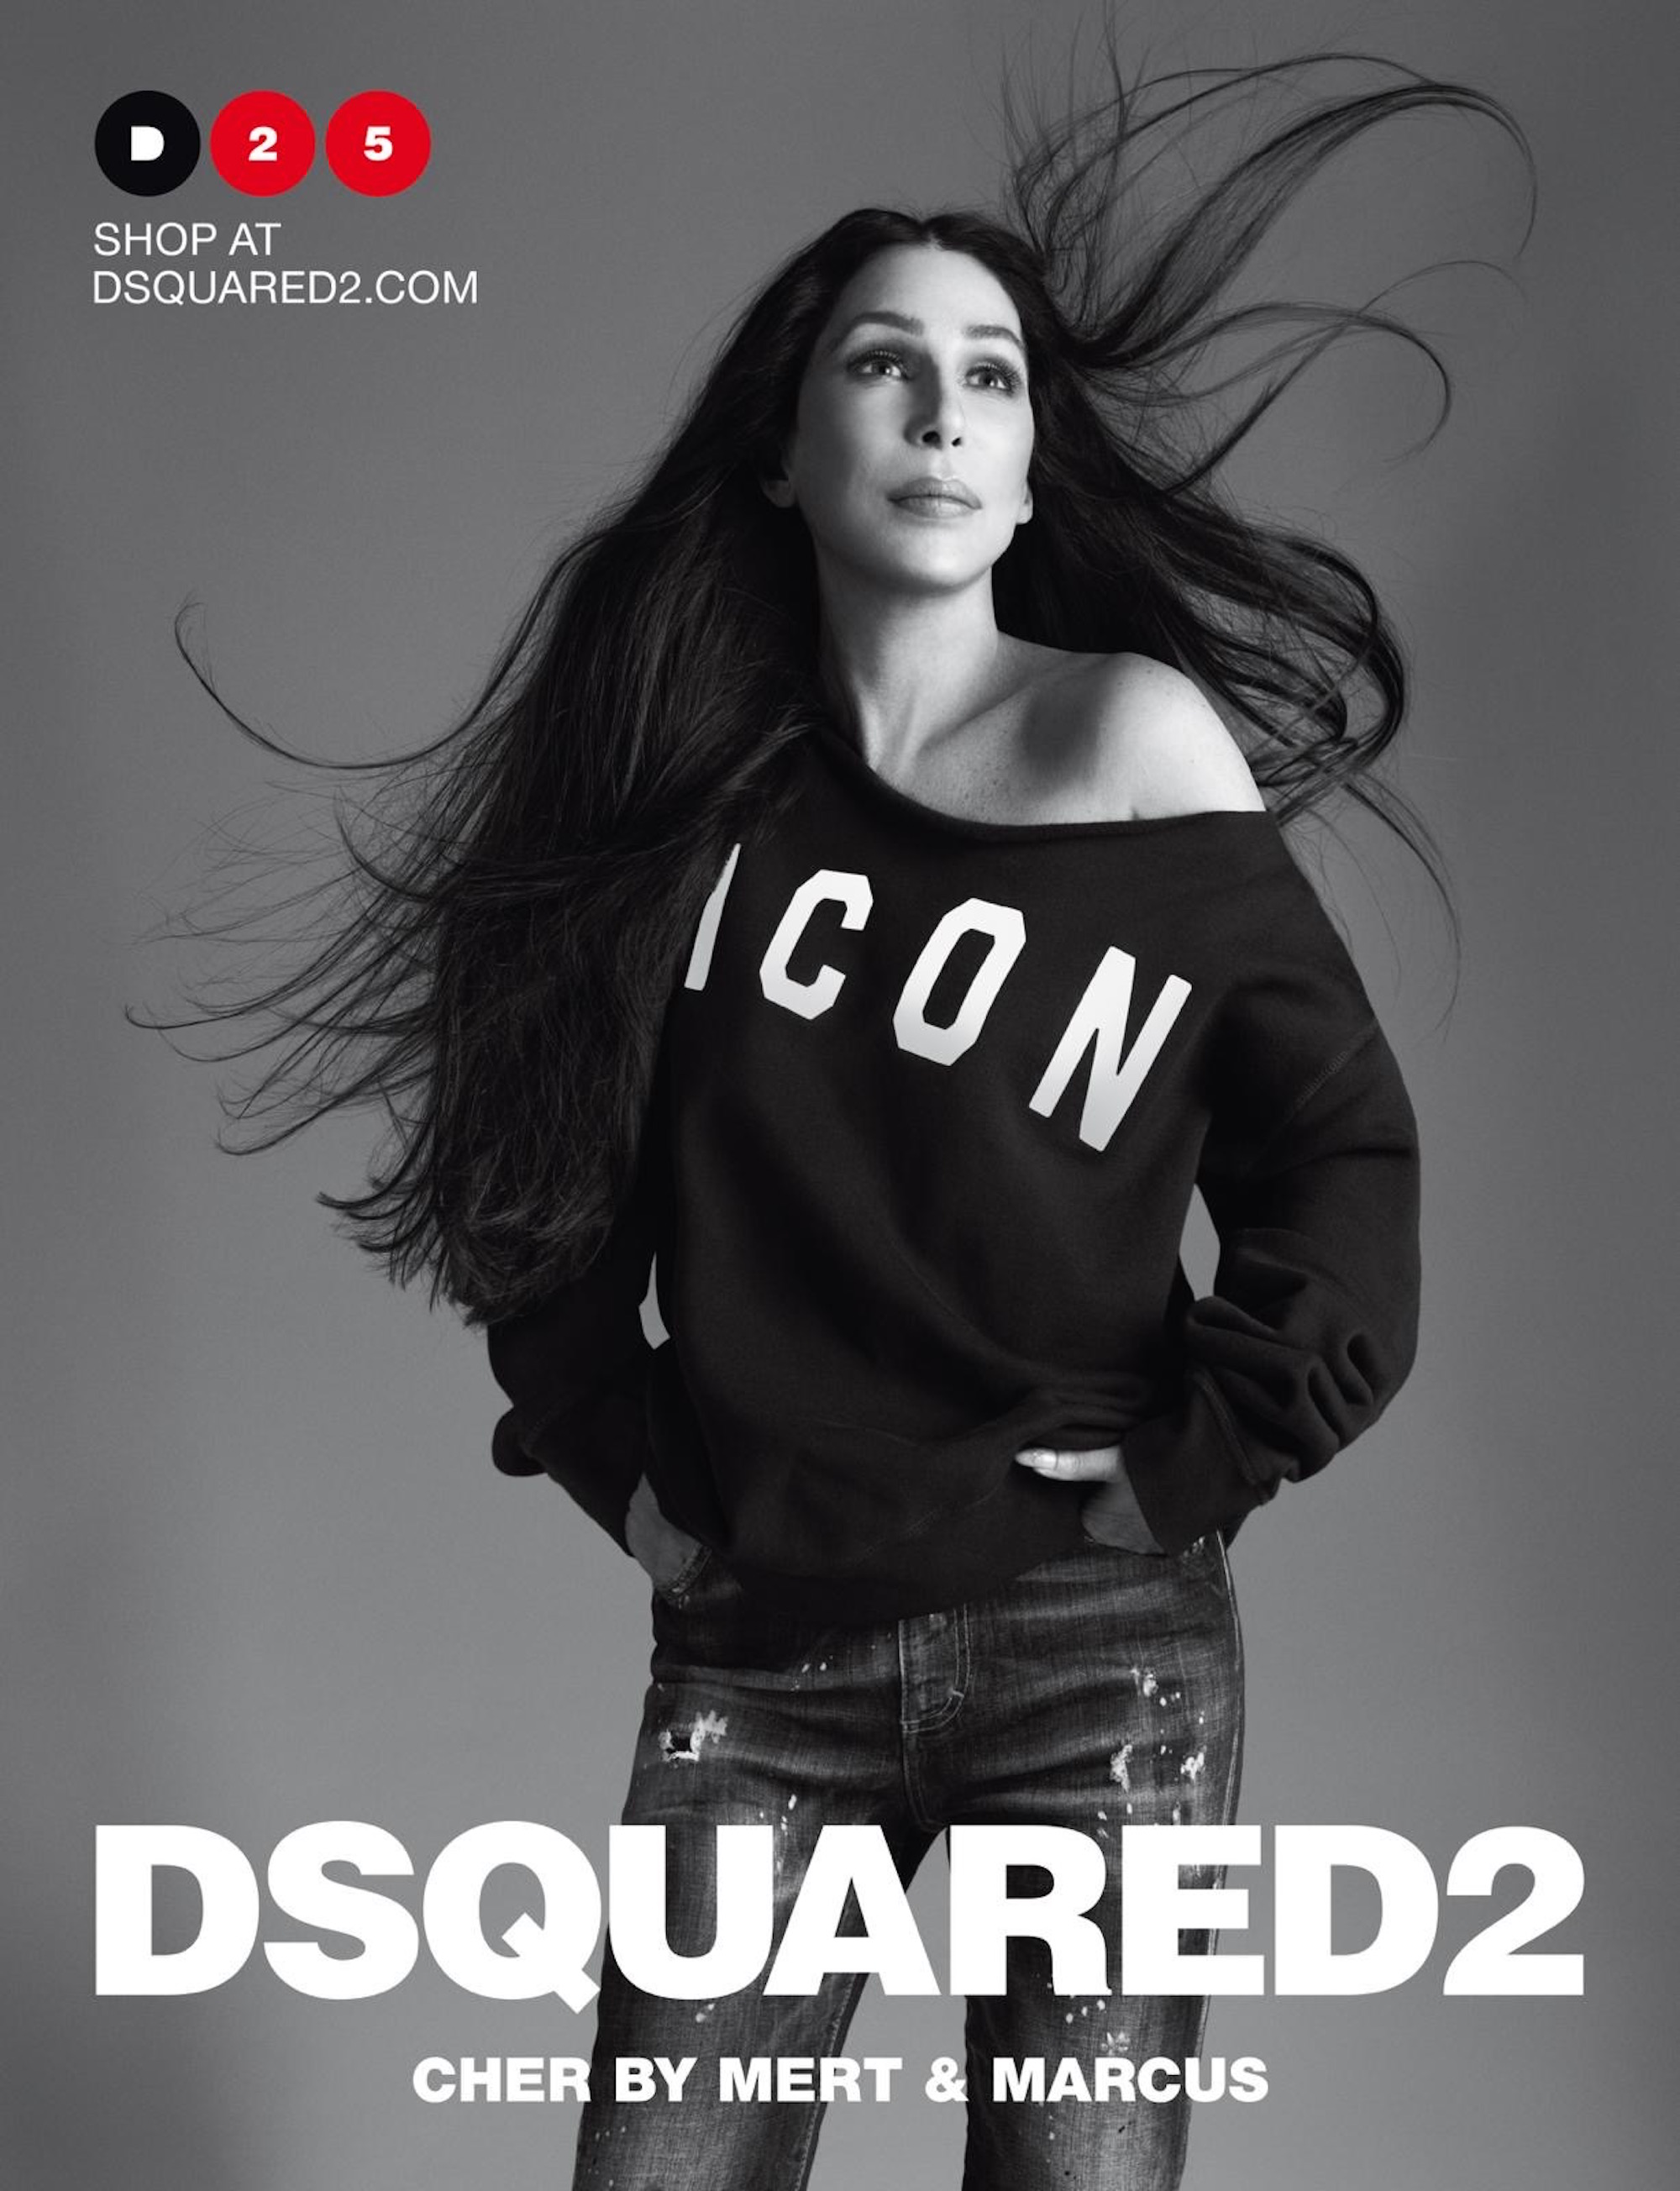 Legends only! Cher stars in Dsquared2's Spring Summer 2020 Campaign